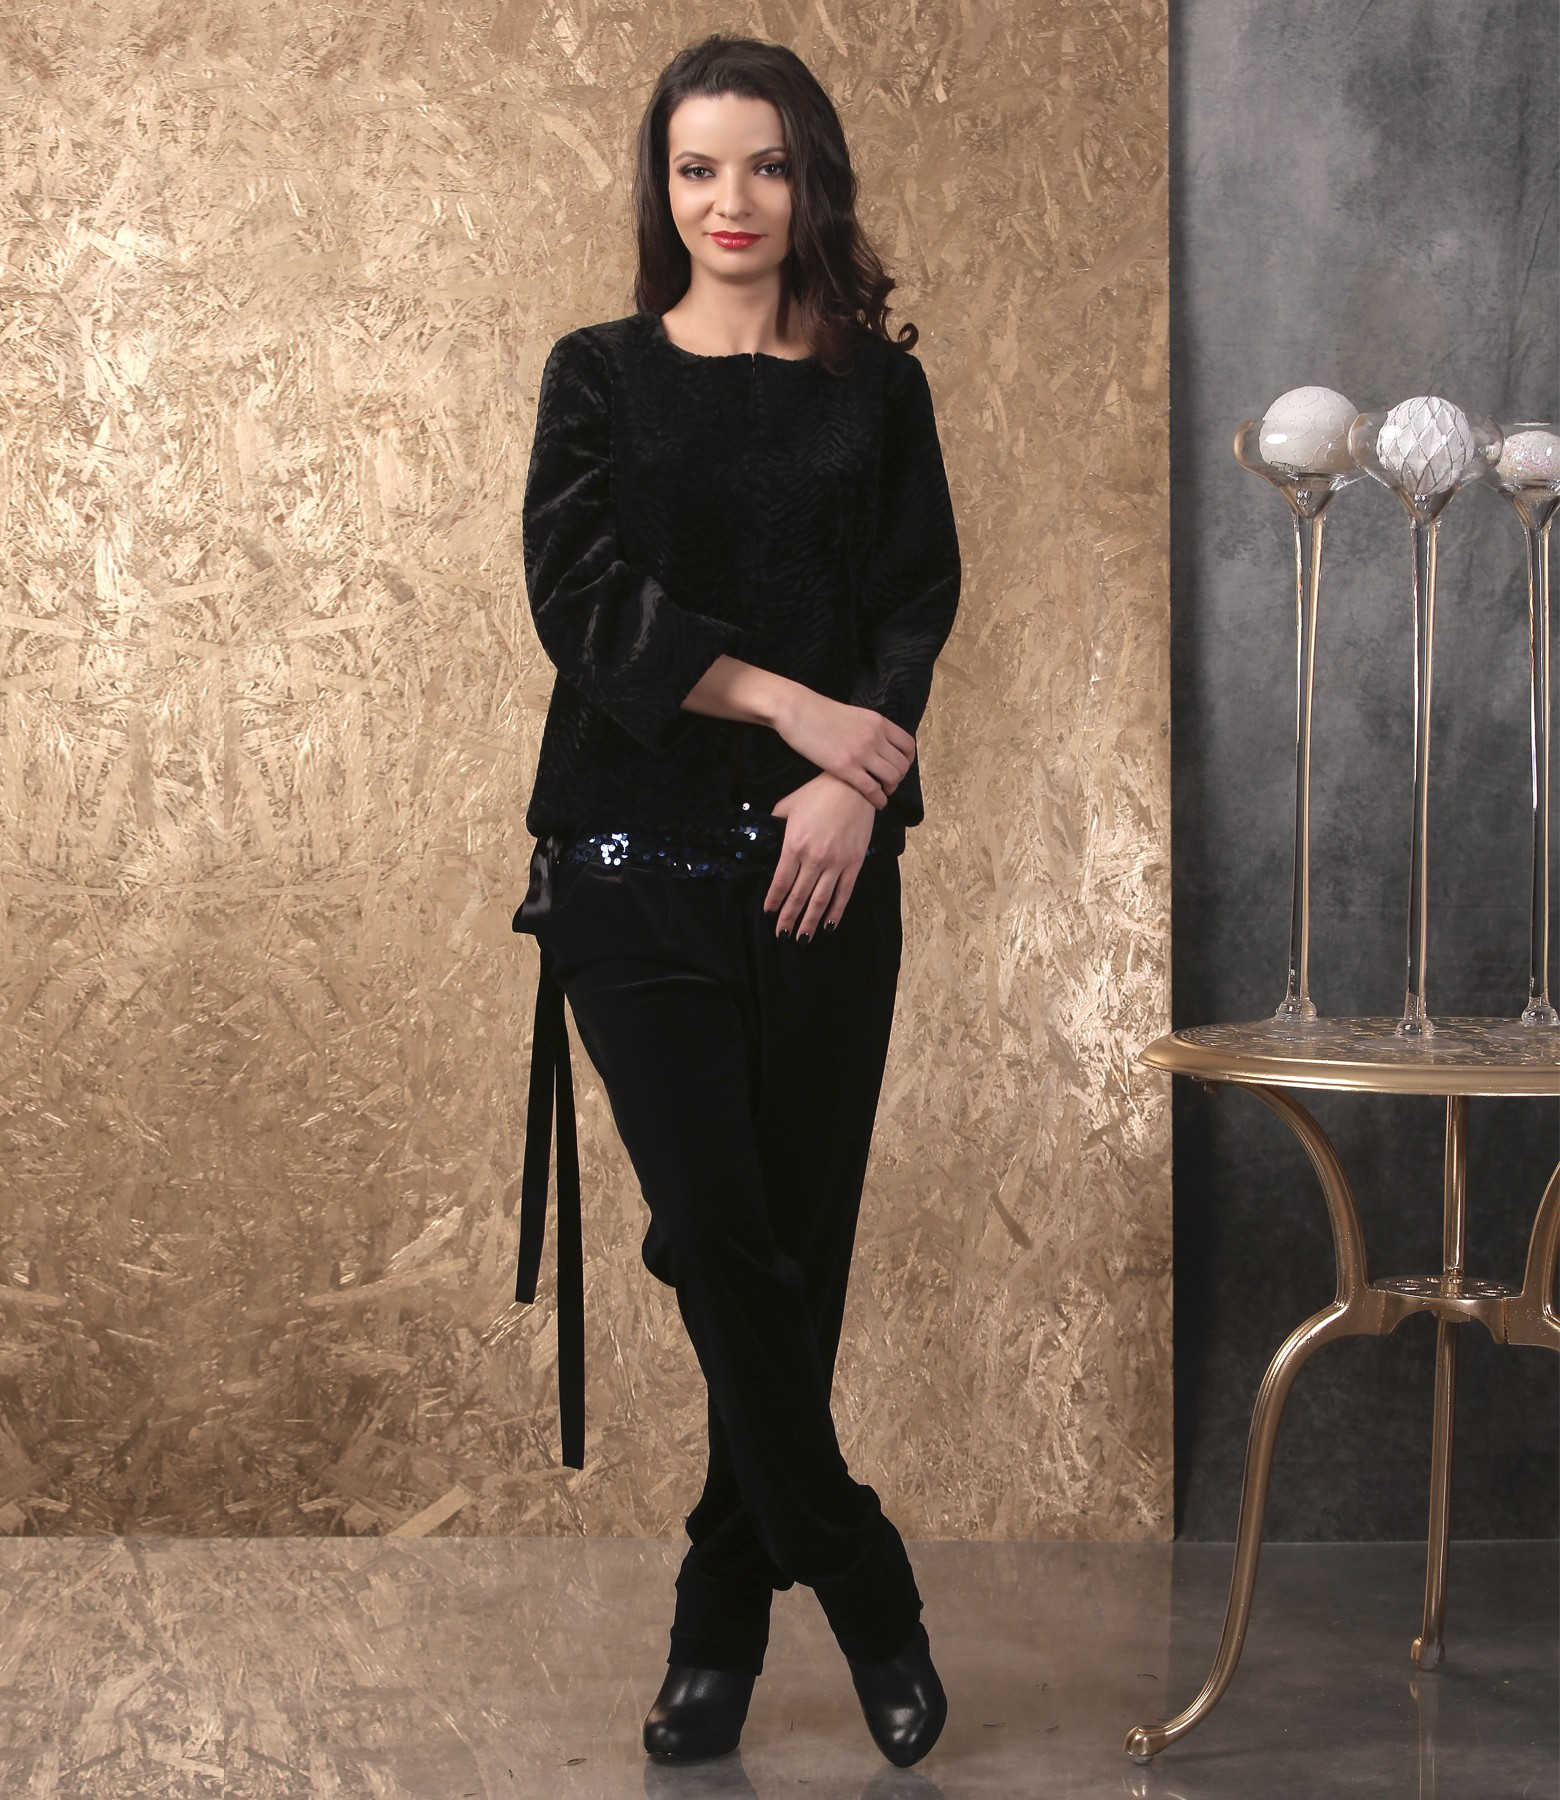 Elegant Outfit With Jacket And Black Velvet Pants - YOKKO